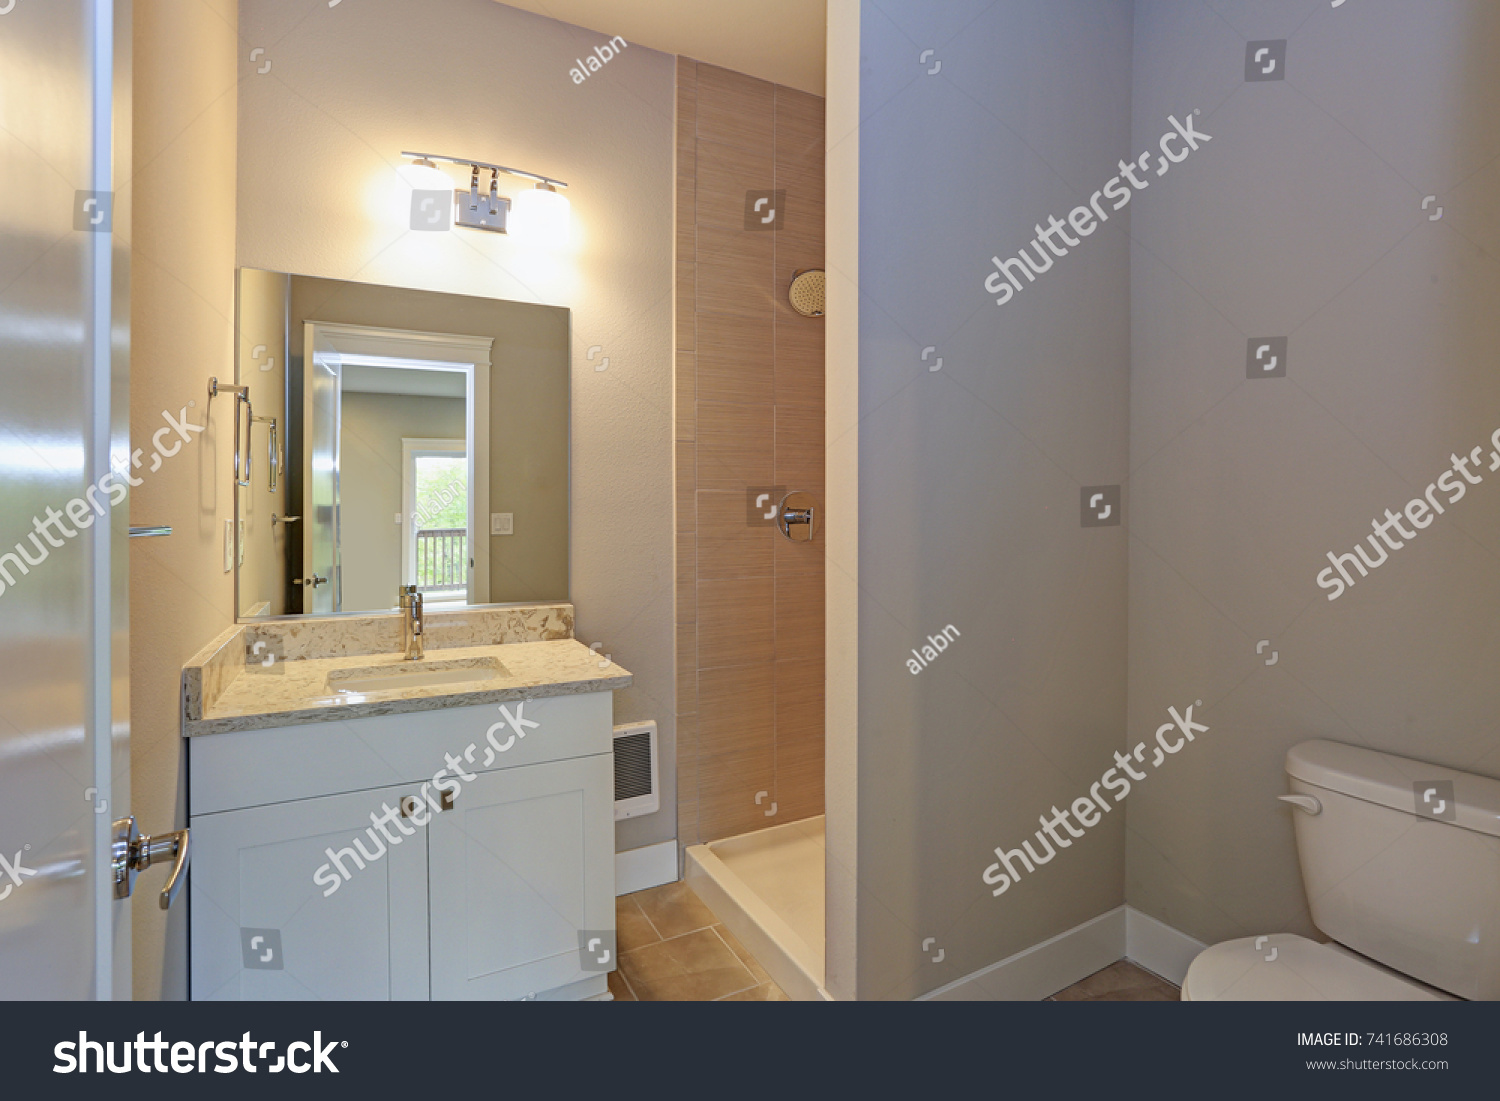 stock-photo-contemporary-white-and-beige-bathroom-with-a-white-bathroom-vanity-under-a-mirror-illuminated-by-741686308